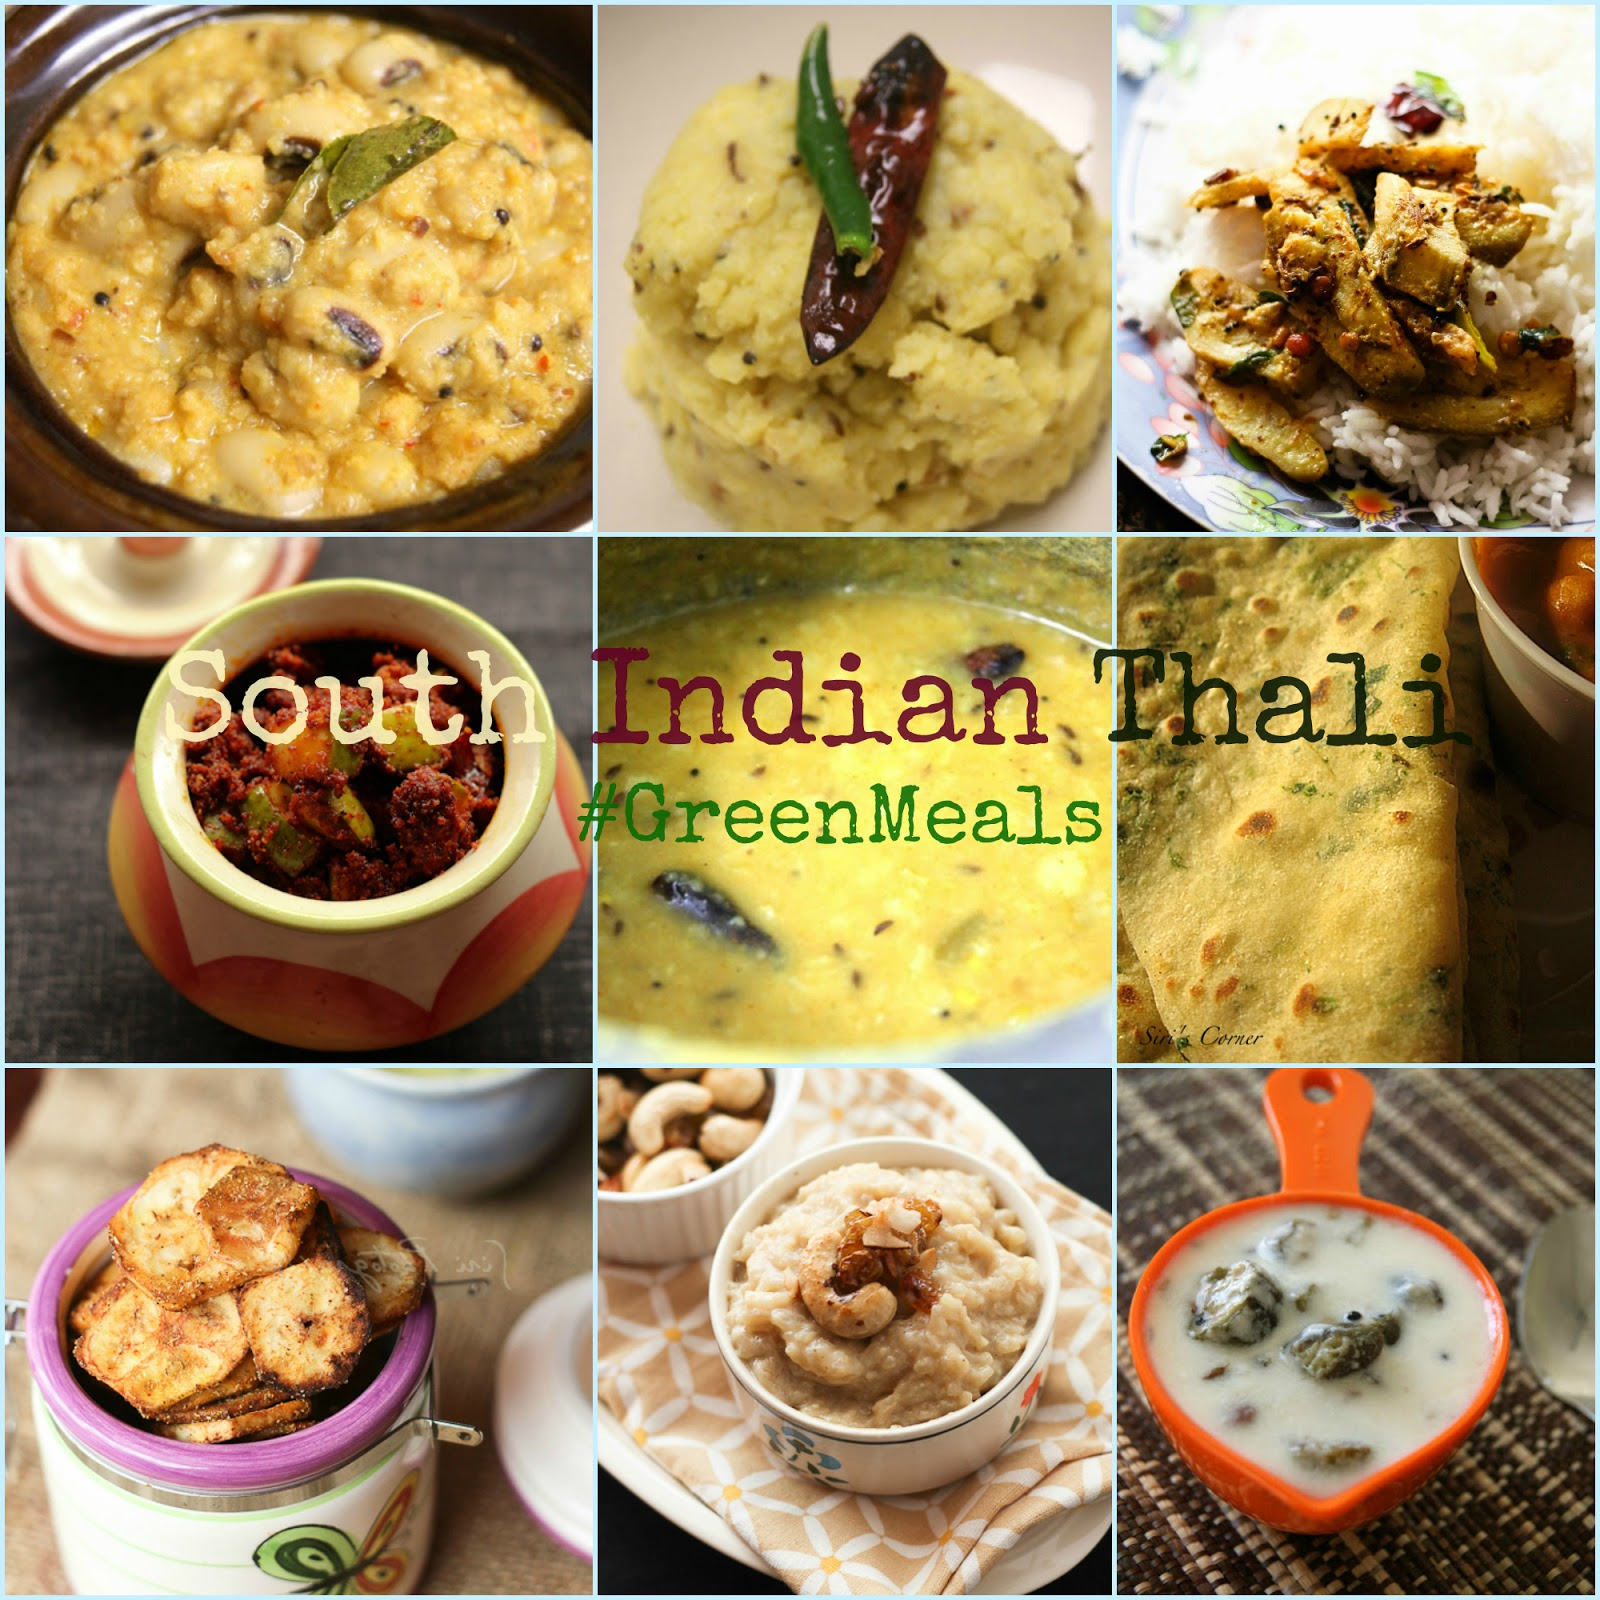 Cooking with siri recipes reviews and reflections celebrating cooking with siri recipes reviews and reflections celebrating food day 2015 top 10 greenmeal recipes a virtual south indian thali forumfinder Images